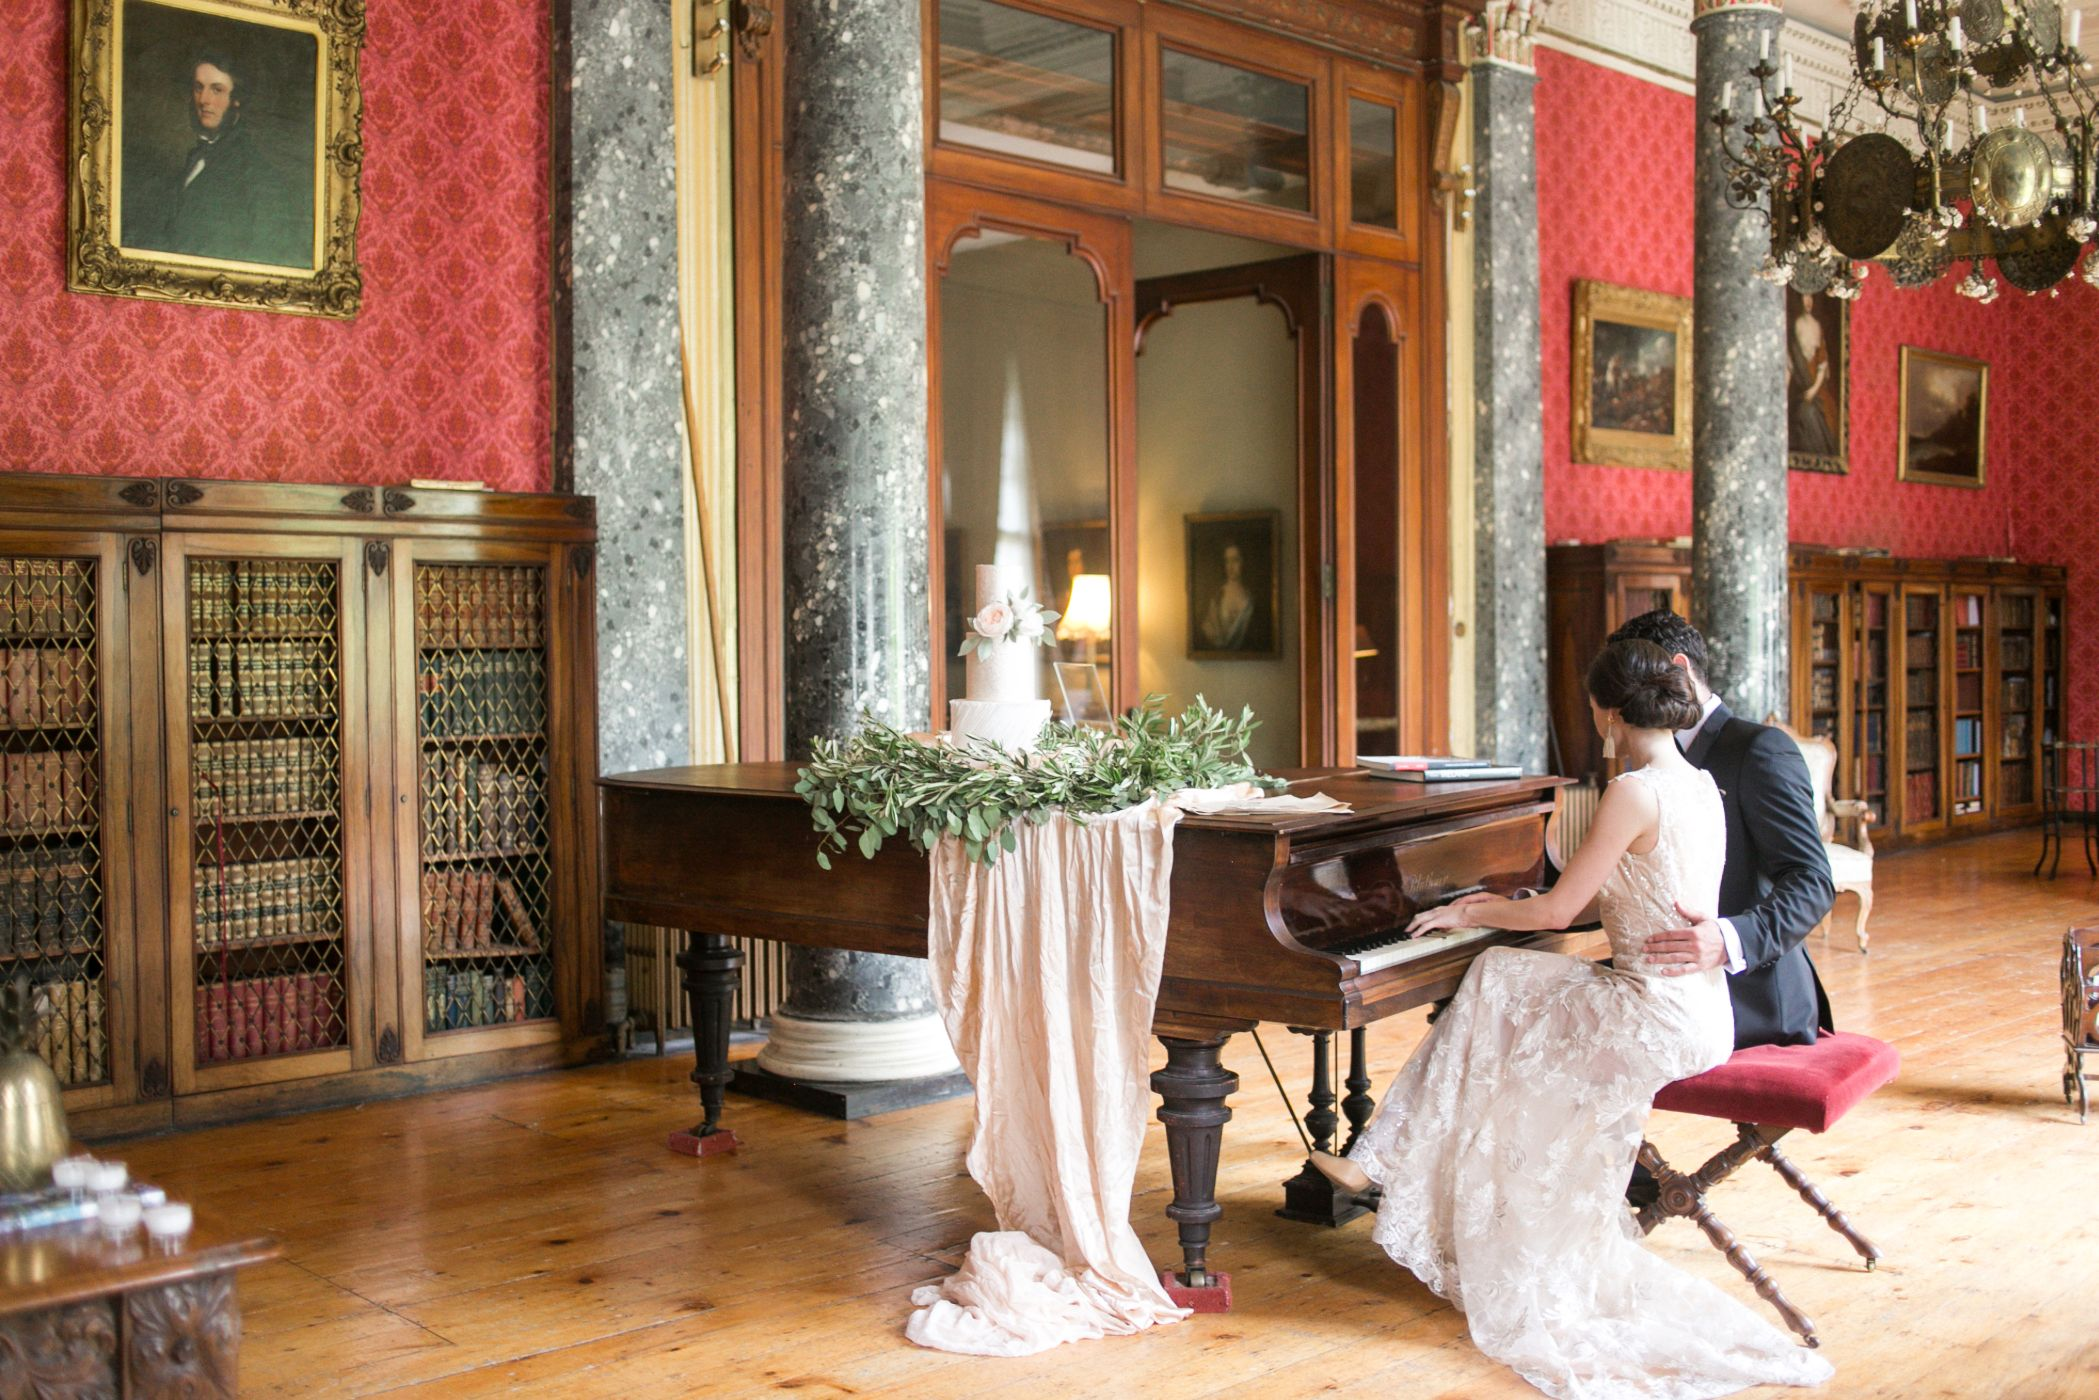 Bride and groom at a piano prior to wedding ceremony.